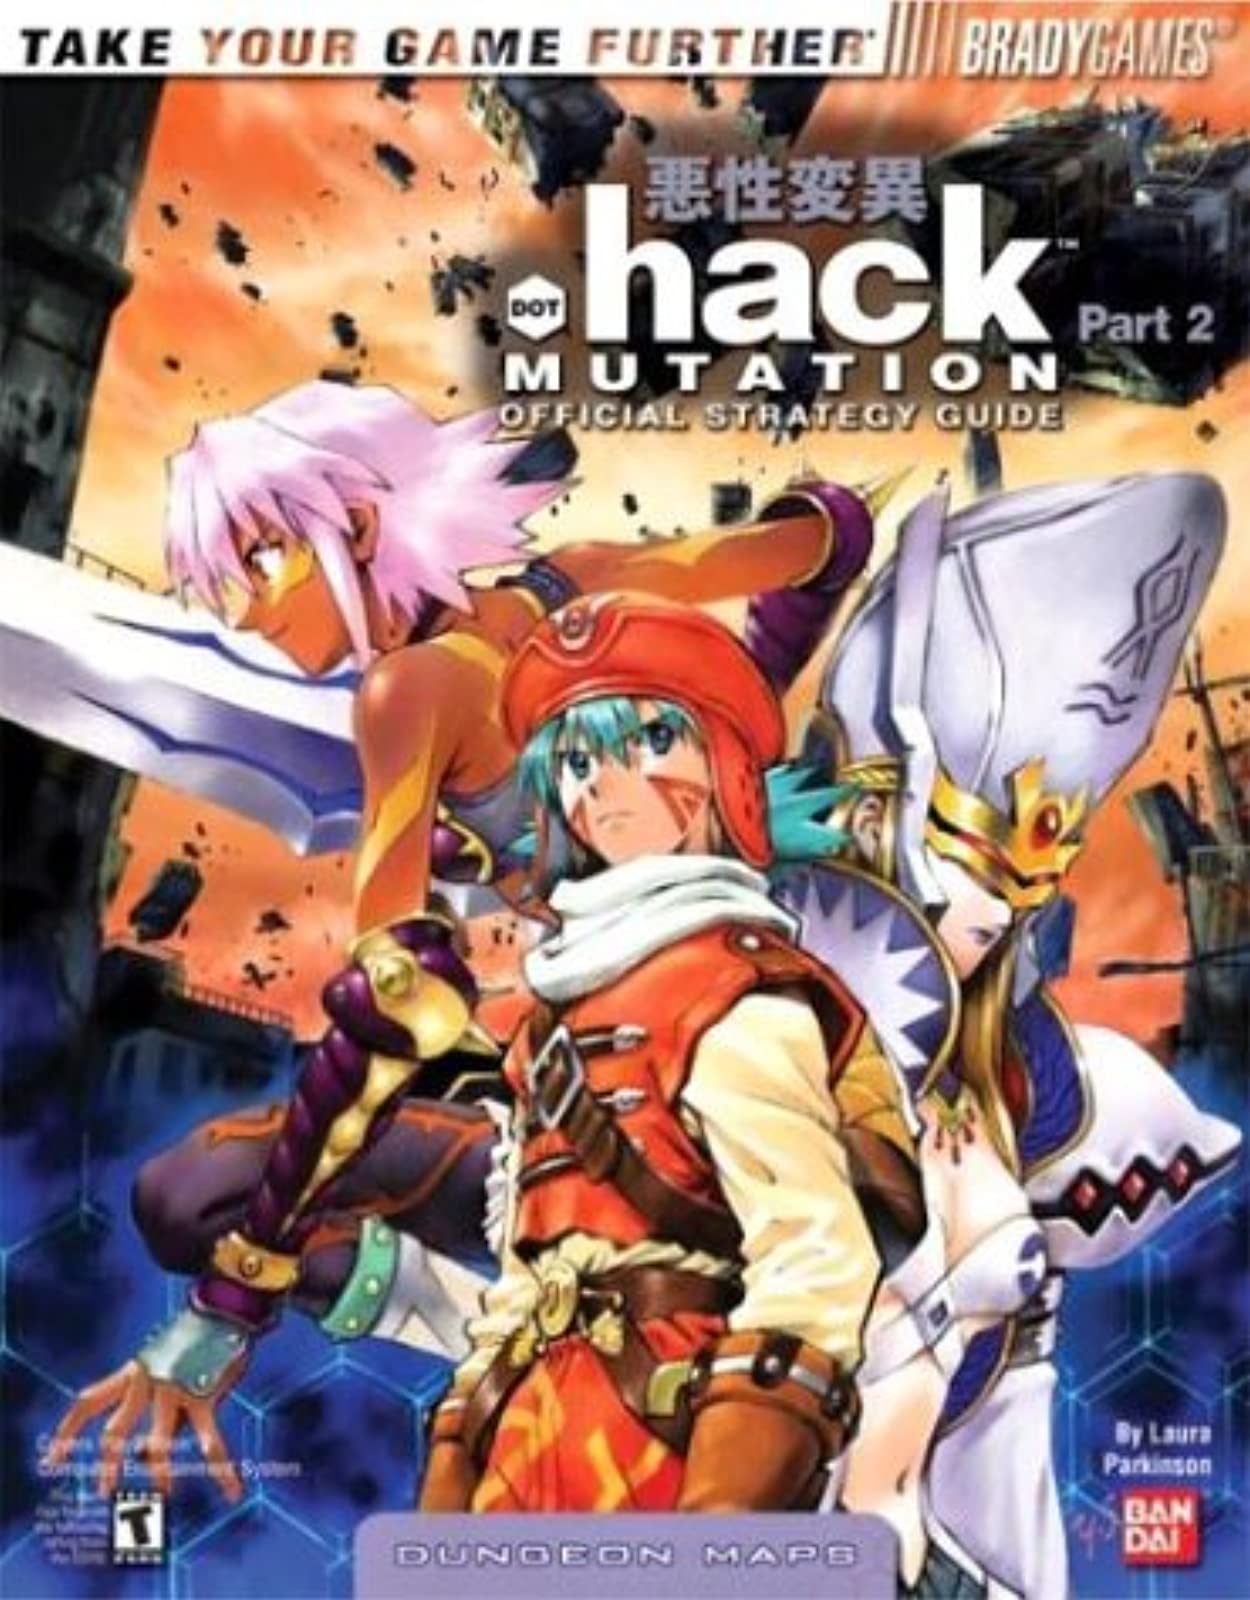 Hacktm Part 2: Mutation Official Strategy Guide Official Strategy Guides Bradyga